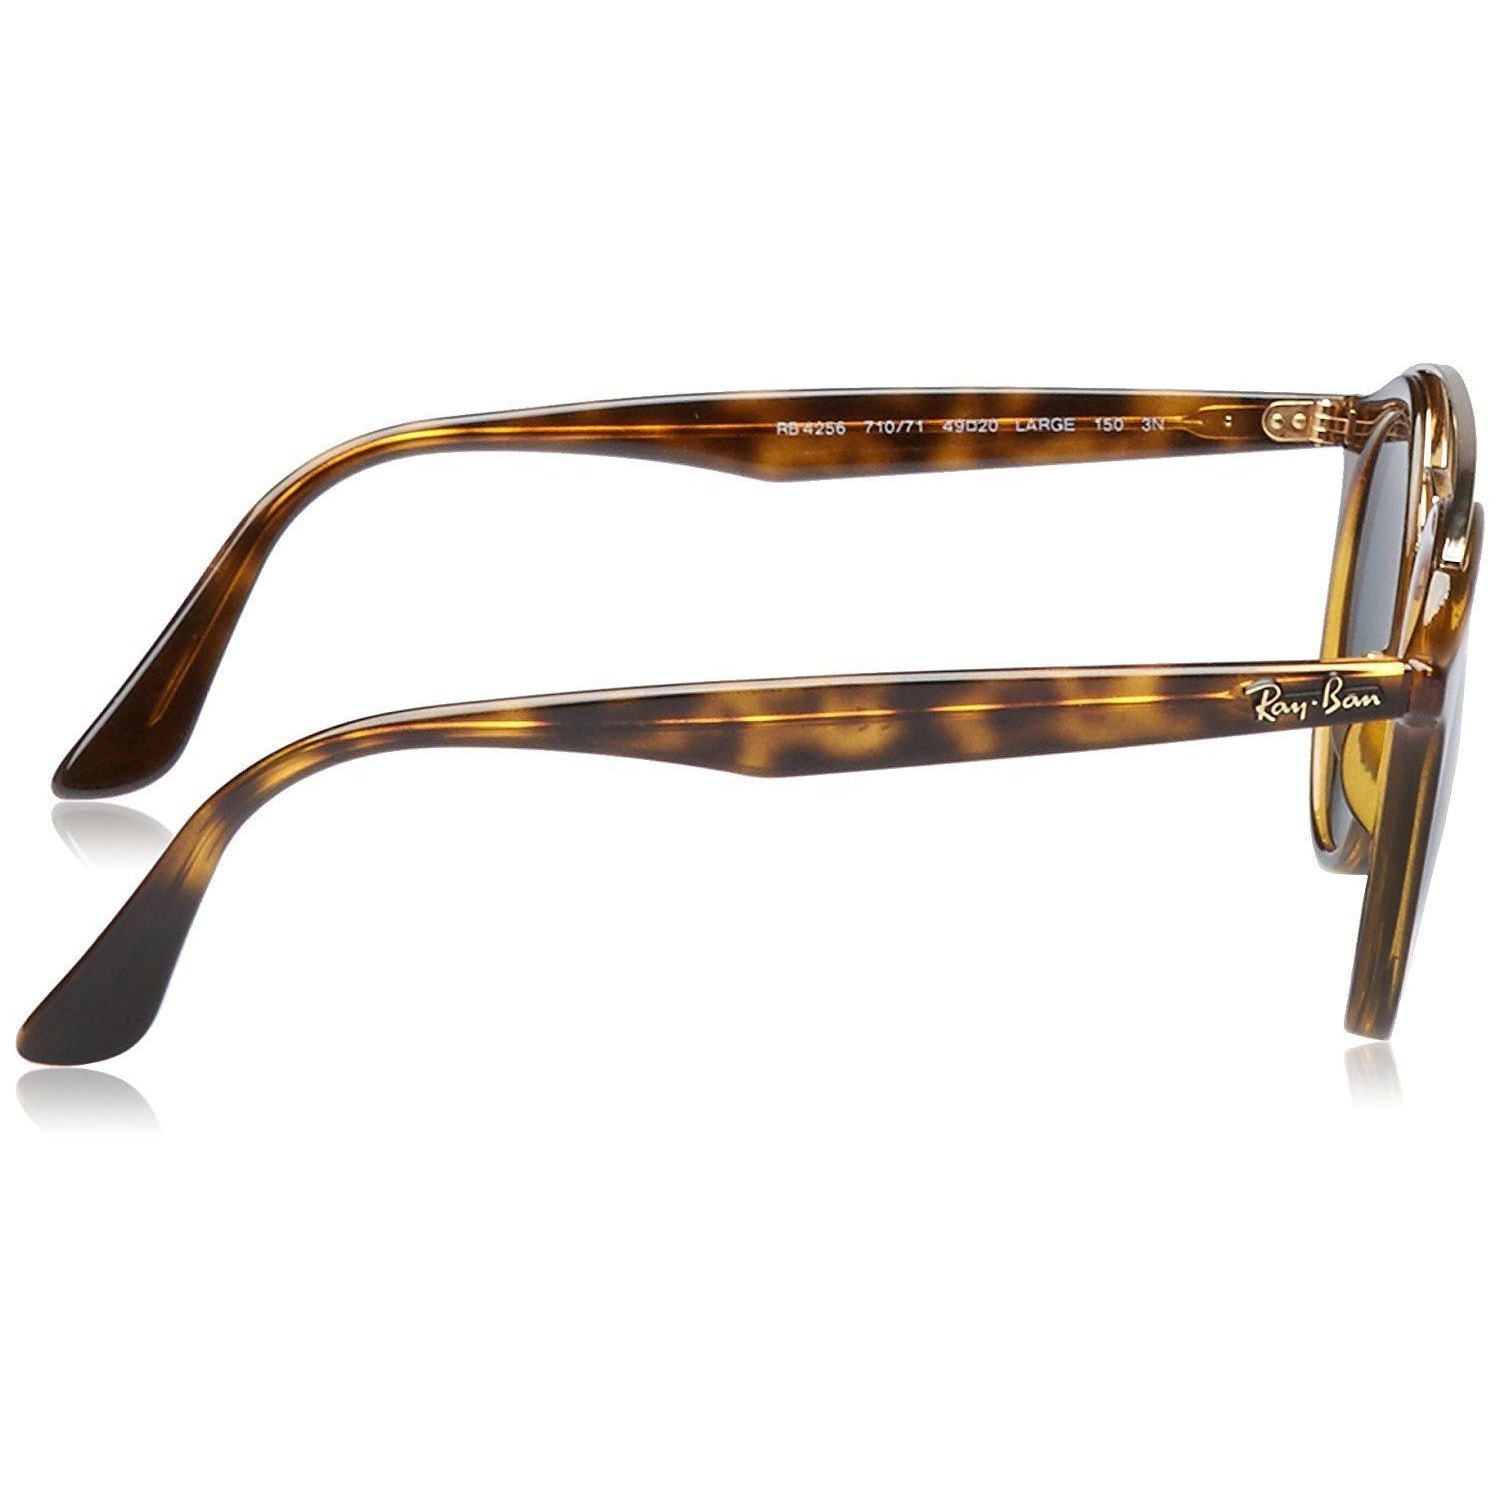 f8e3d7660c Shop Ray-Ban Gatsby I RB4256 710 71 Unisex Tortoise Frame Green Classic Lens  Sunglasses - Free Shipping Today - Overstock.com - 15287907